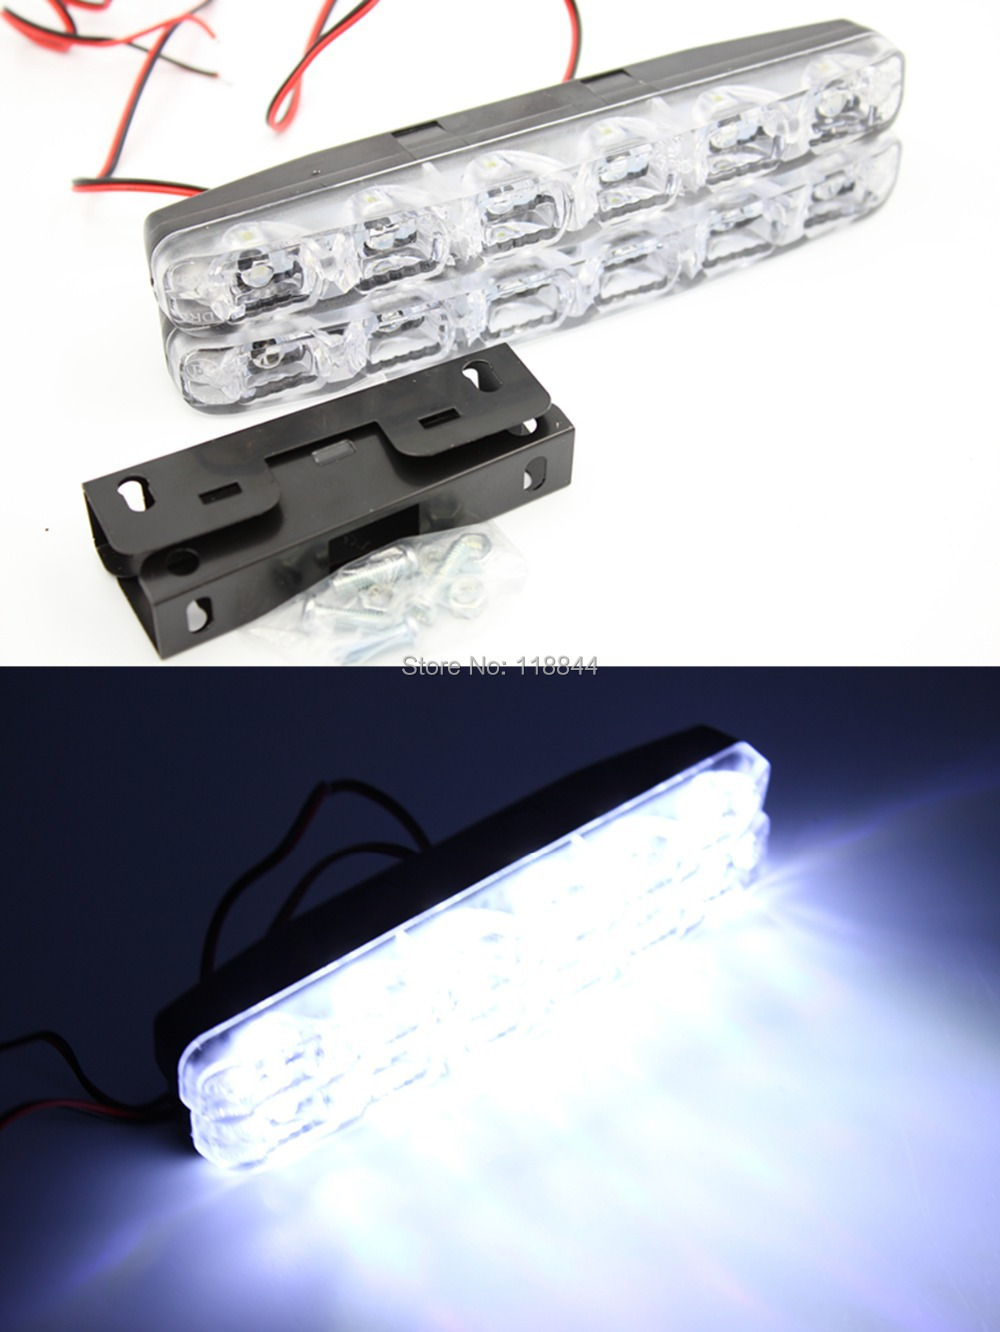 New 2Pcs E4 100% WATERPROOF 6W Car Daytime Running Lights 6 LED DRL Fog lamp bulb Daylight Kit Super White 12V DC high quality h3 led 20w led projector high power white car auto drl daytime running lights headlight fog lamp bulb dc12v